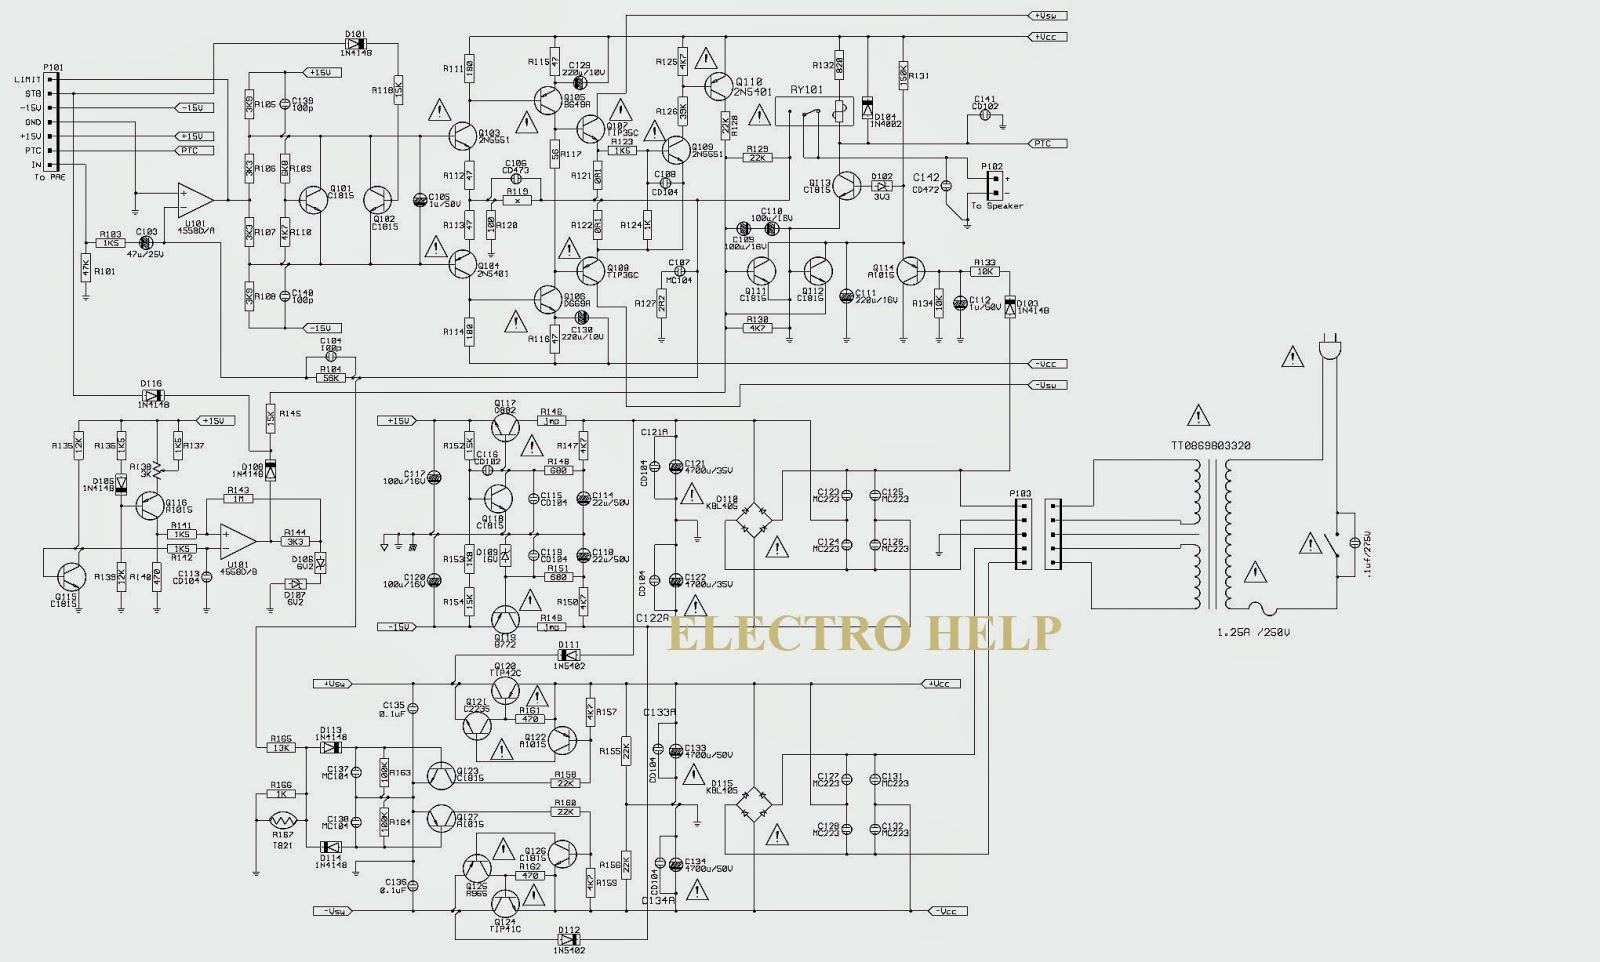 Jbl Home Theater System Cs 460 And Cs 680 Schematic